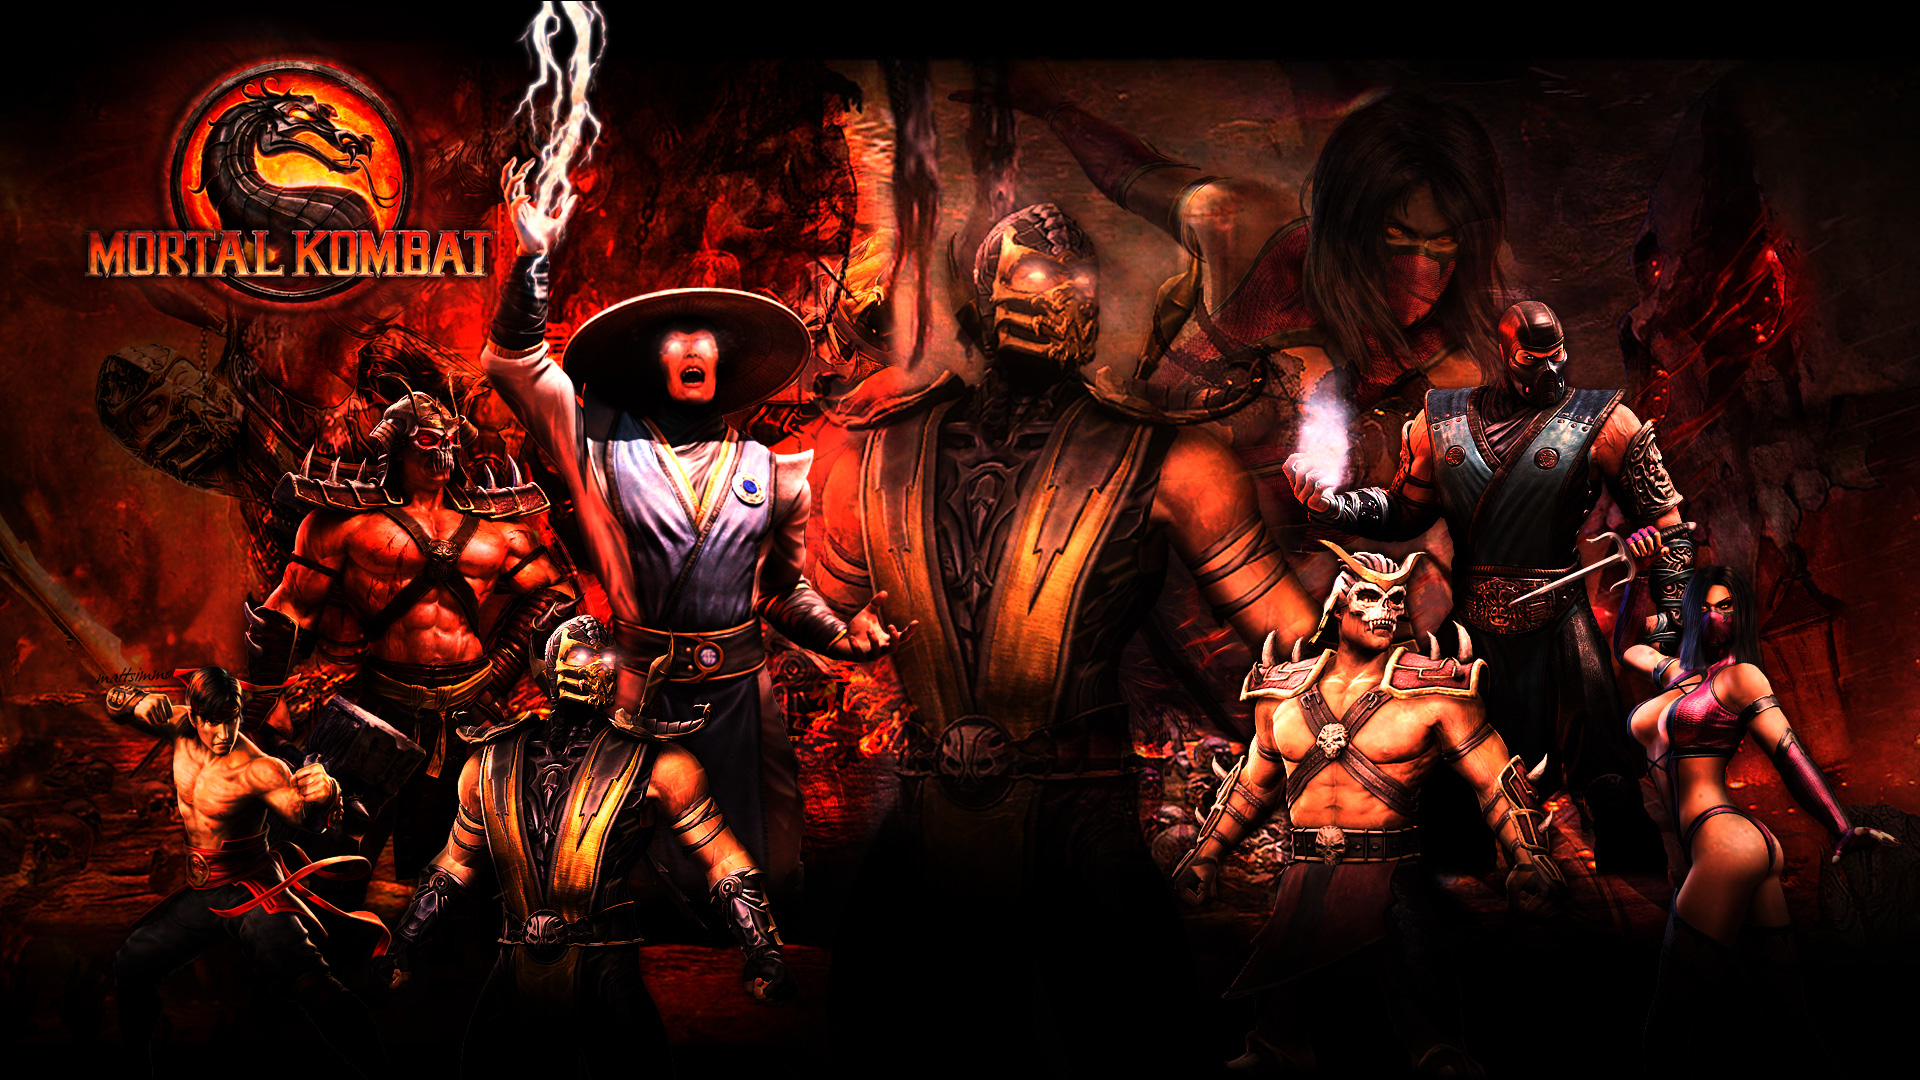 Pin Mortal Kombat 9 Wallpapers In Hd Page 4 Dragon Wallpaper on 1920x1080